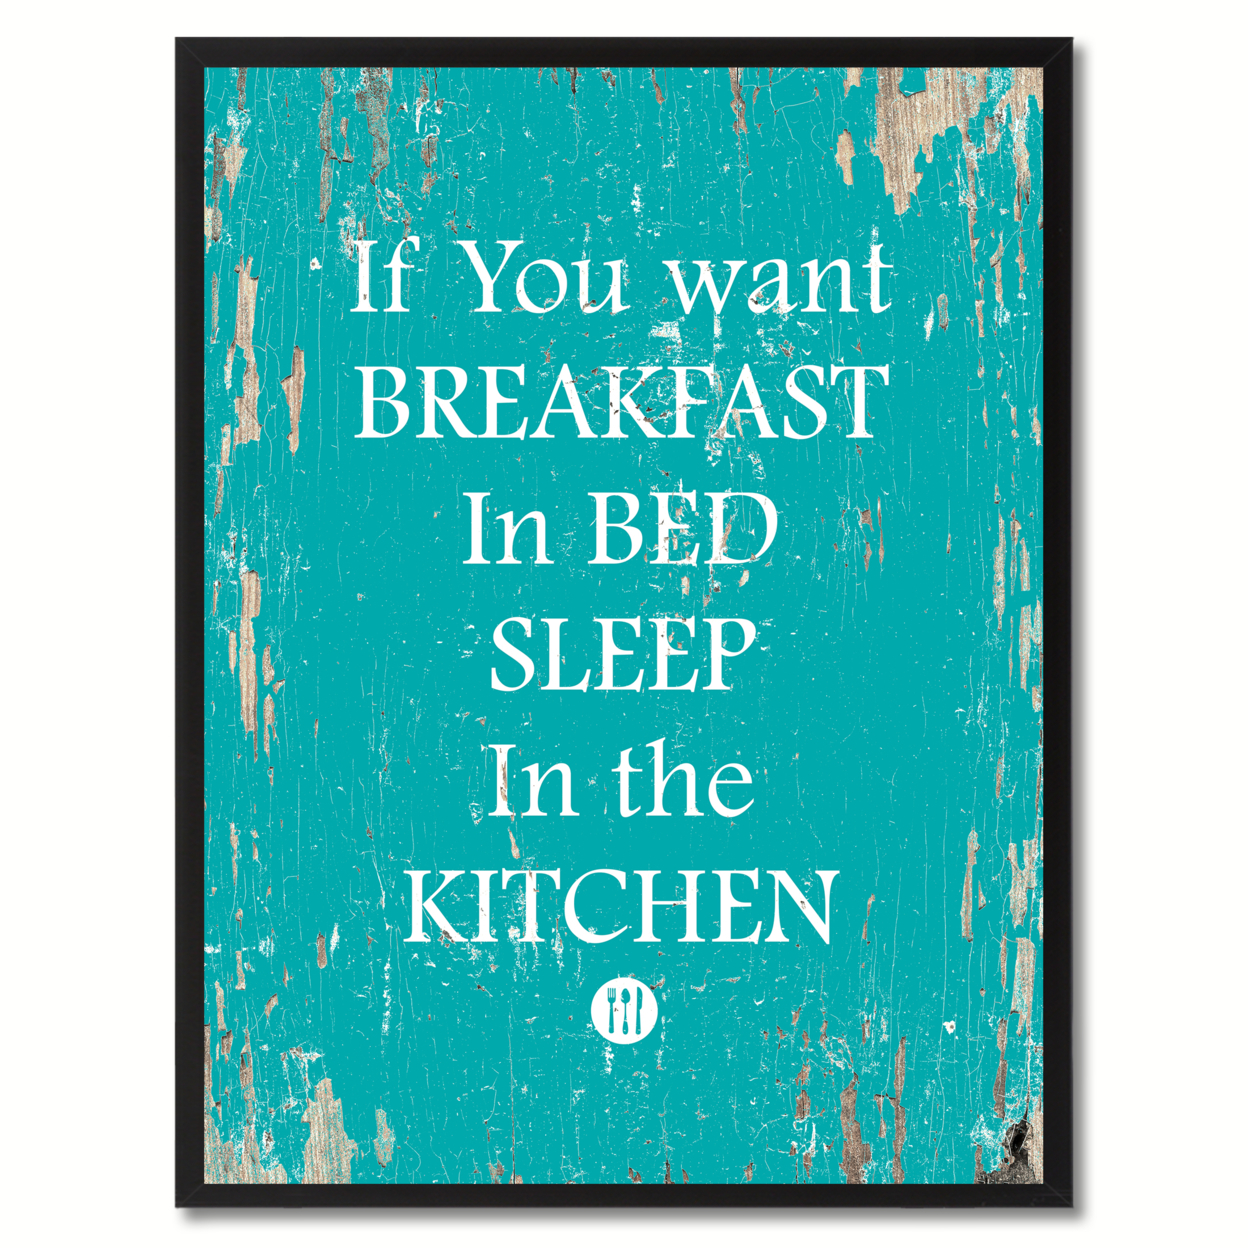 If You Want Breakfast In Bed Sleep In The Ketchen Quote Saying Canvas Print With Picture Frame Home Decor Wall Art 111184